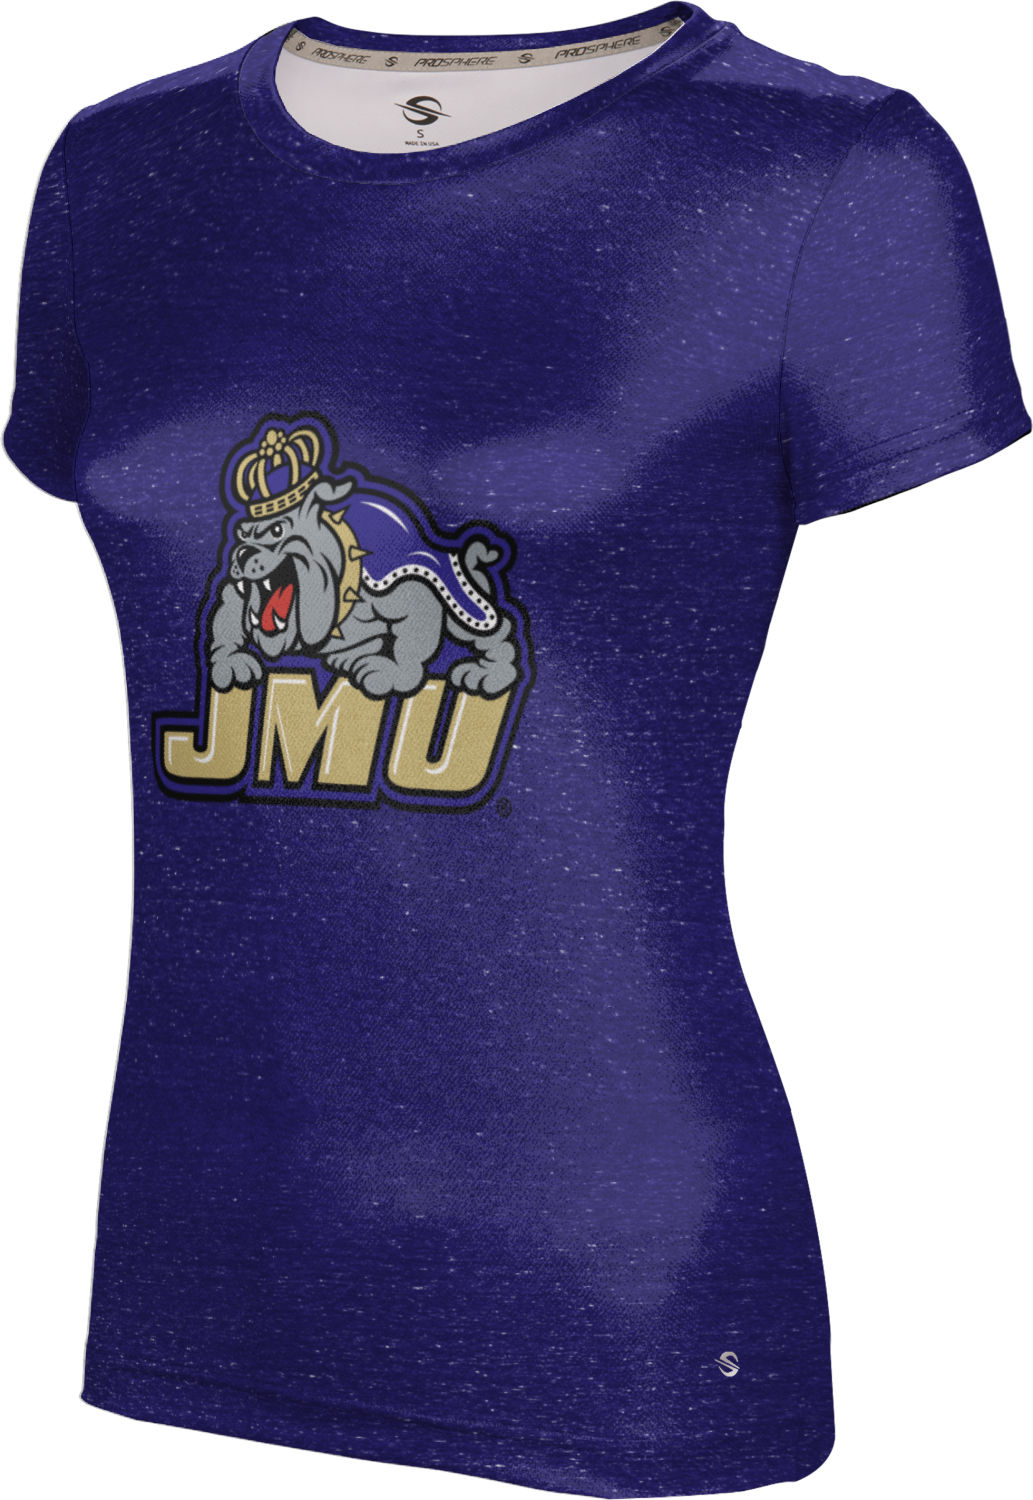 ProSphere Girls' James Madison University Foundation Heather Tech Tee